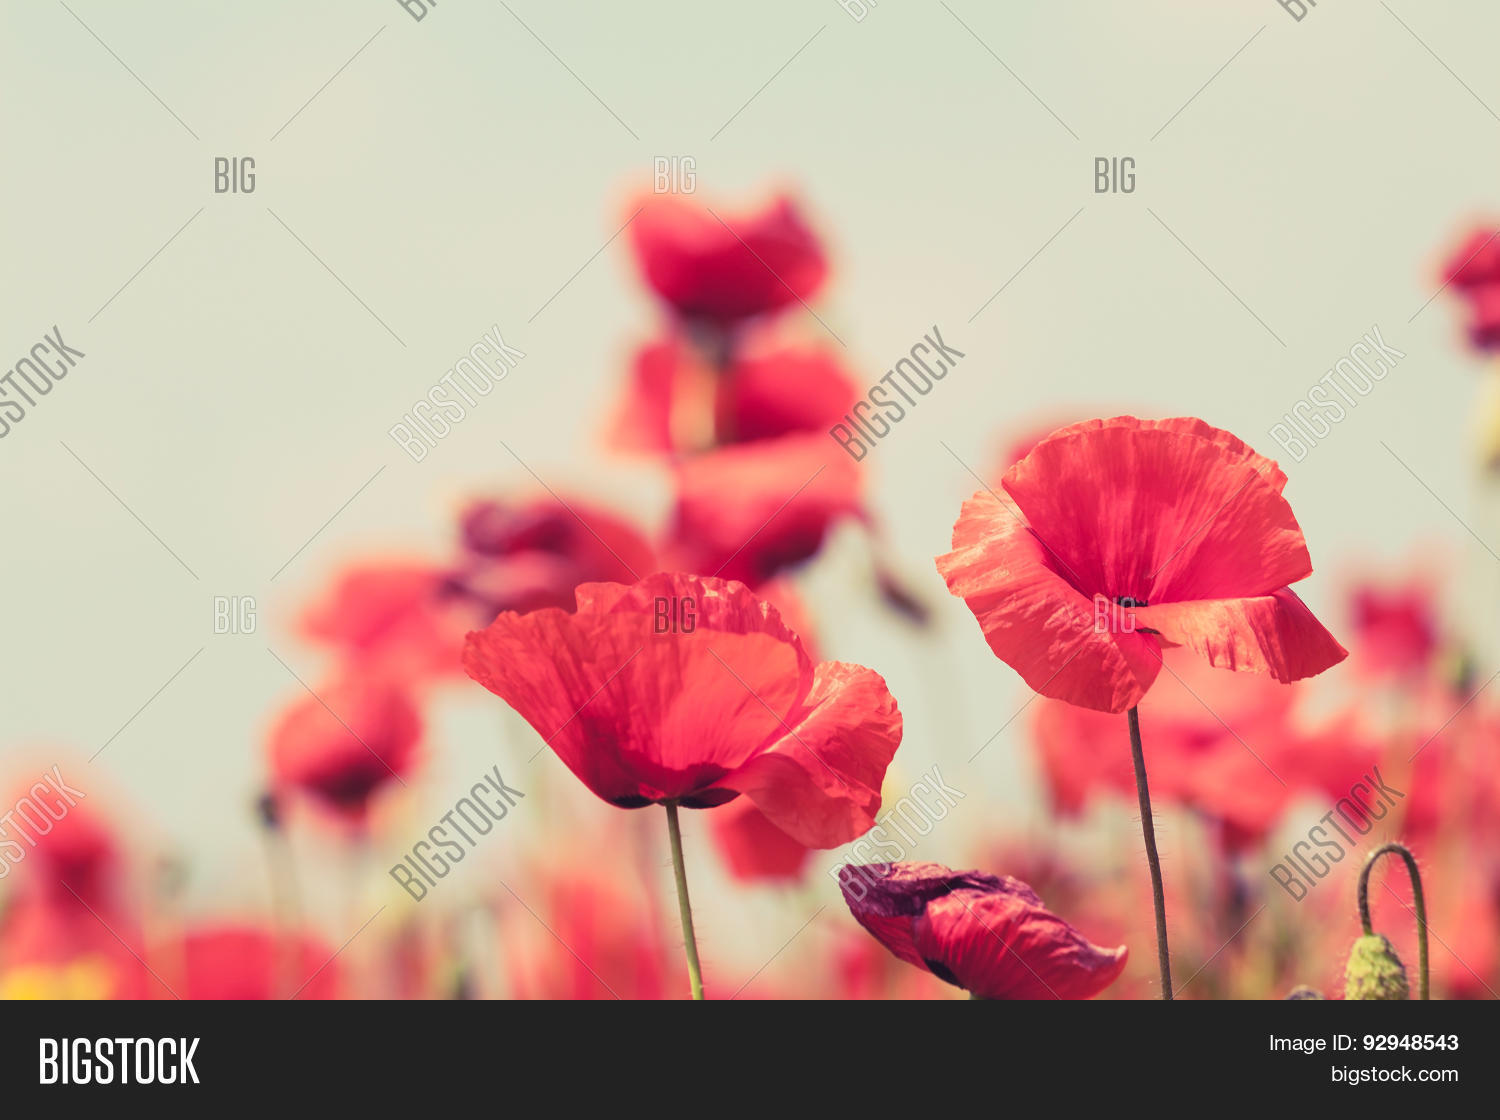 Poppy Flowers Retro Image Photo Free Trial Bigstock